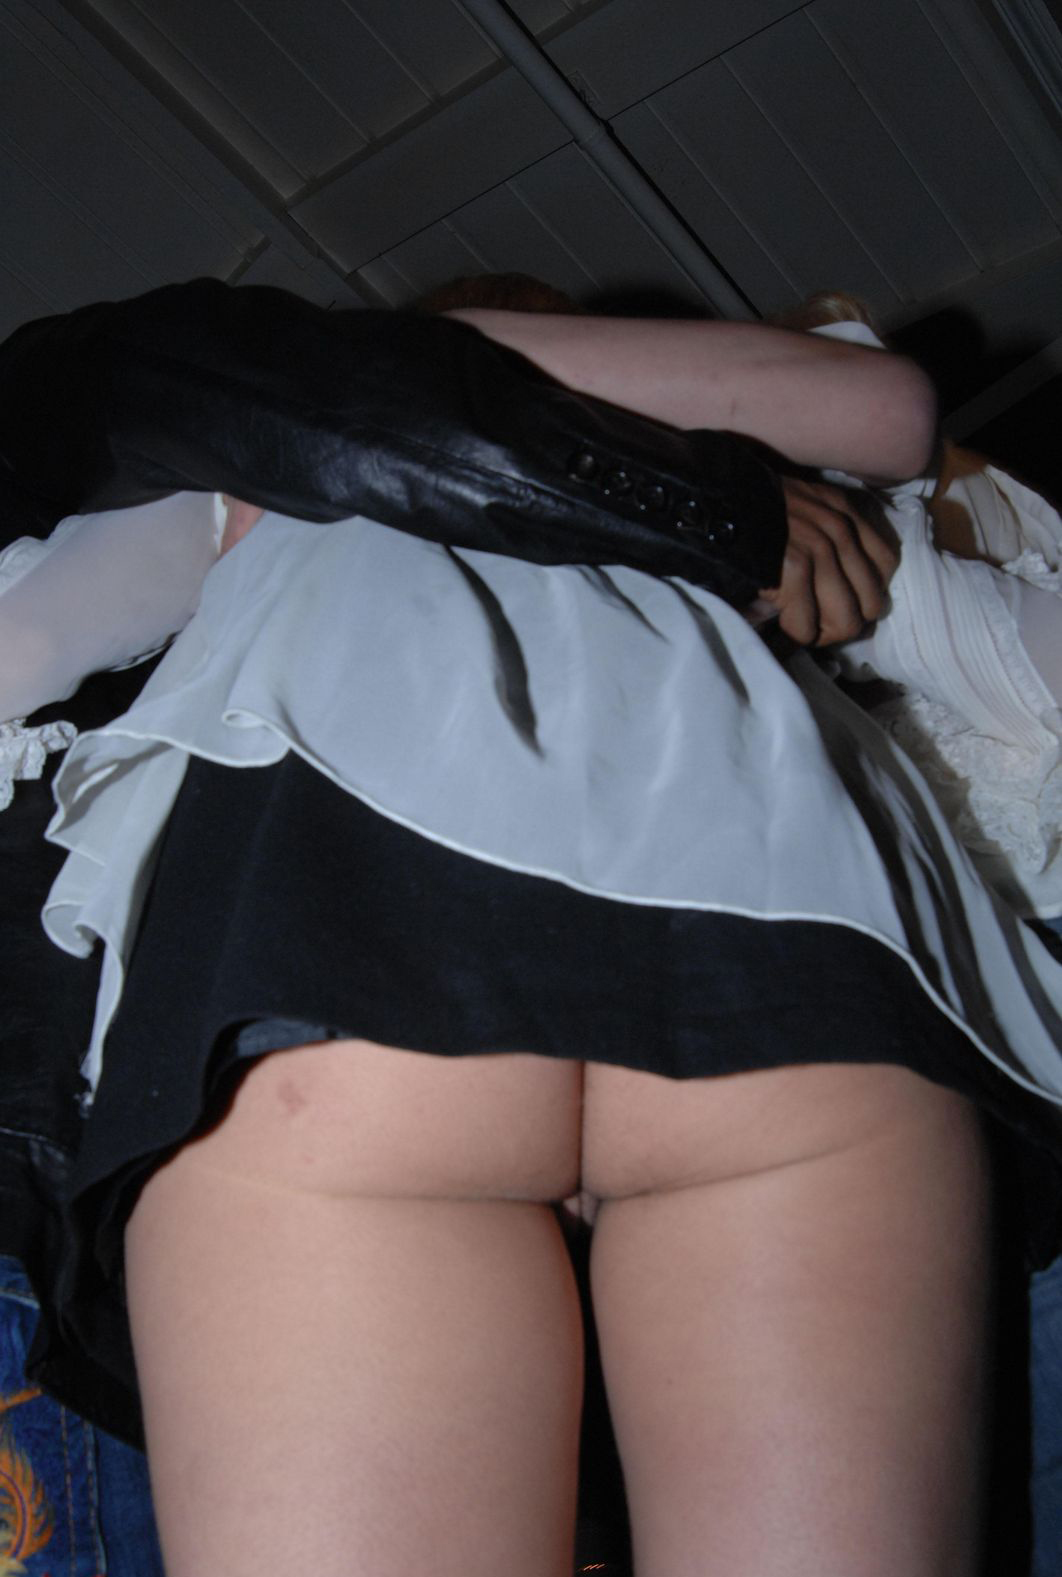 Hilton lohan naked britney pussy spears